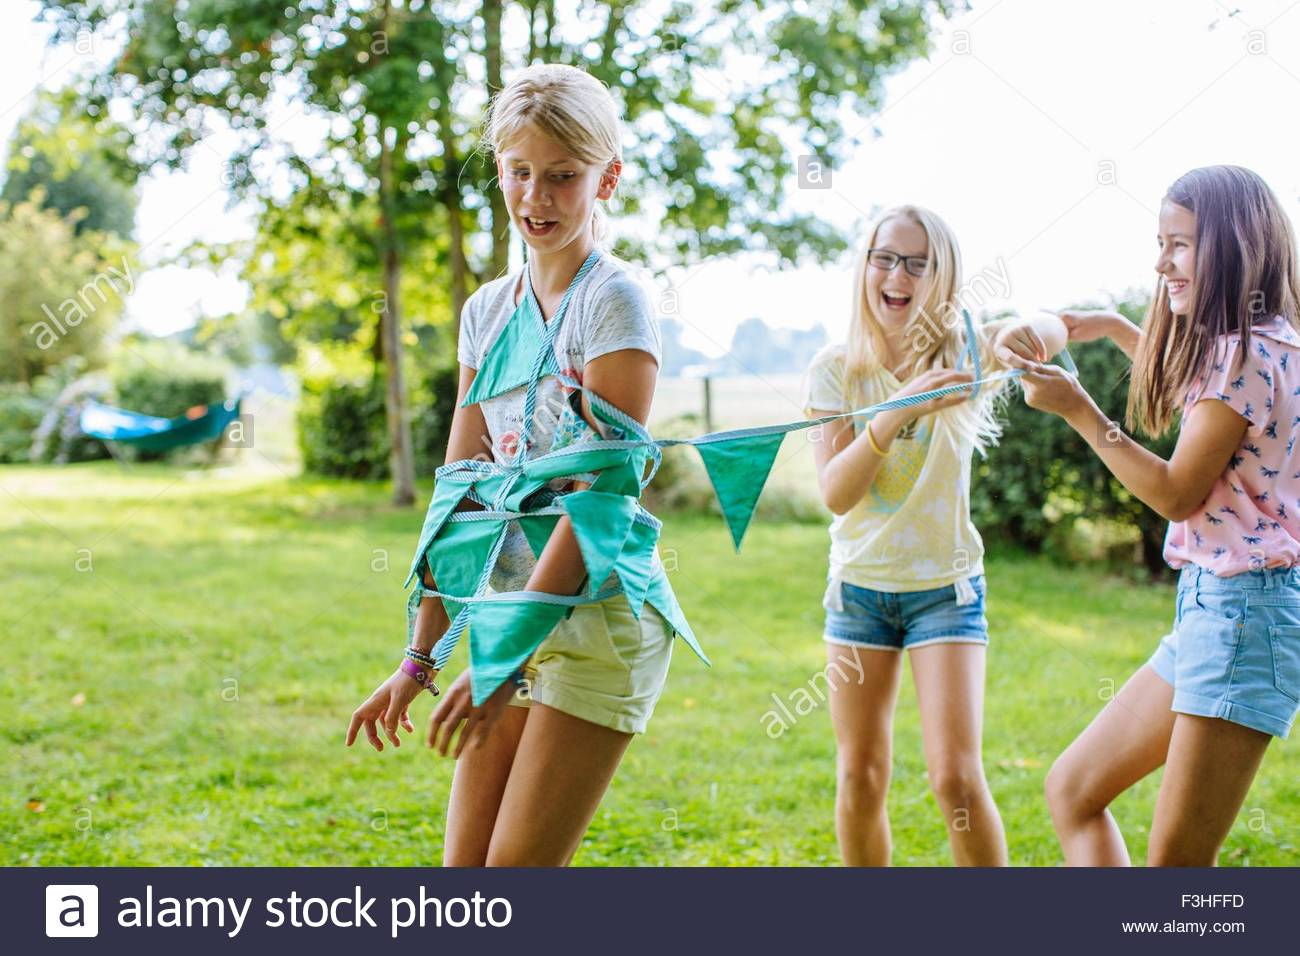 Girls wrapping friend up in bunting - Stock Image